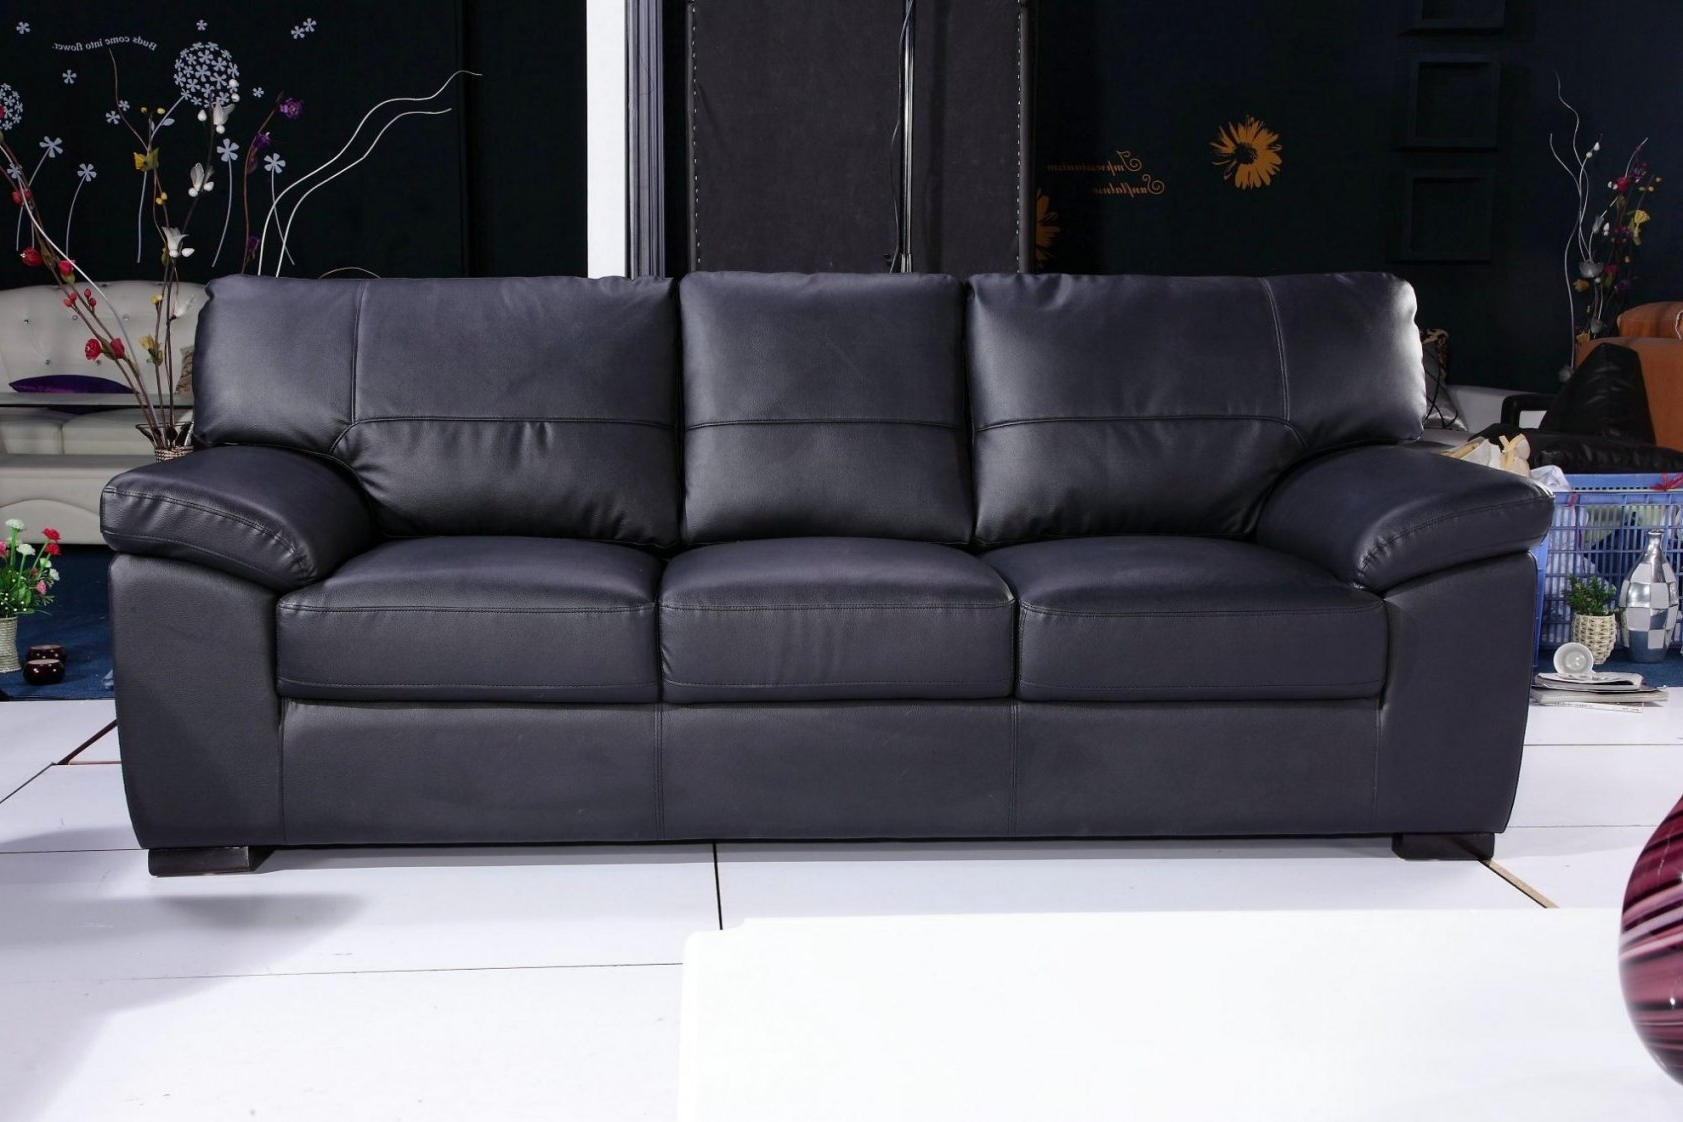 3 Seater Leather Sofas throughout Current 3 Seater Black Leather Sofa